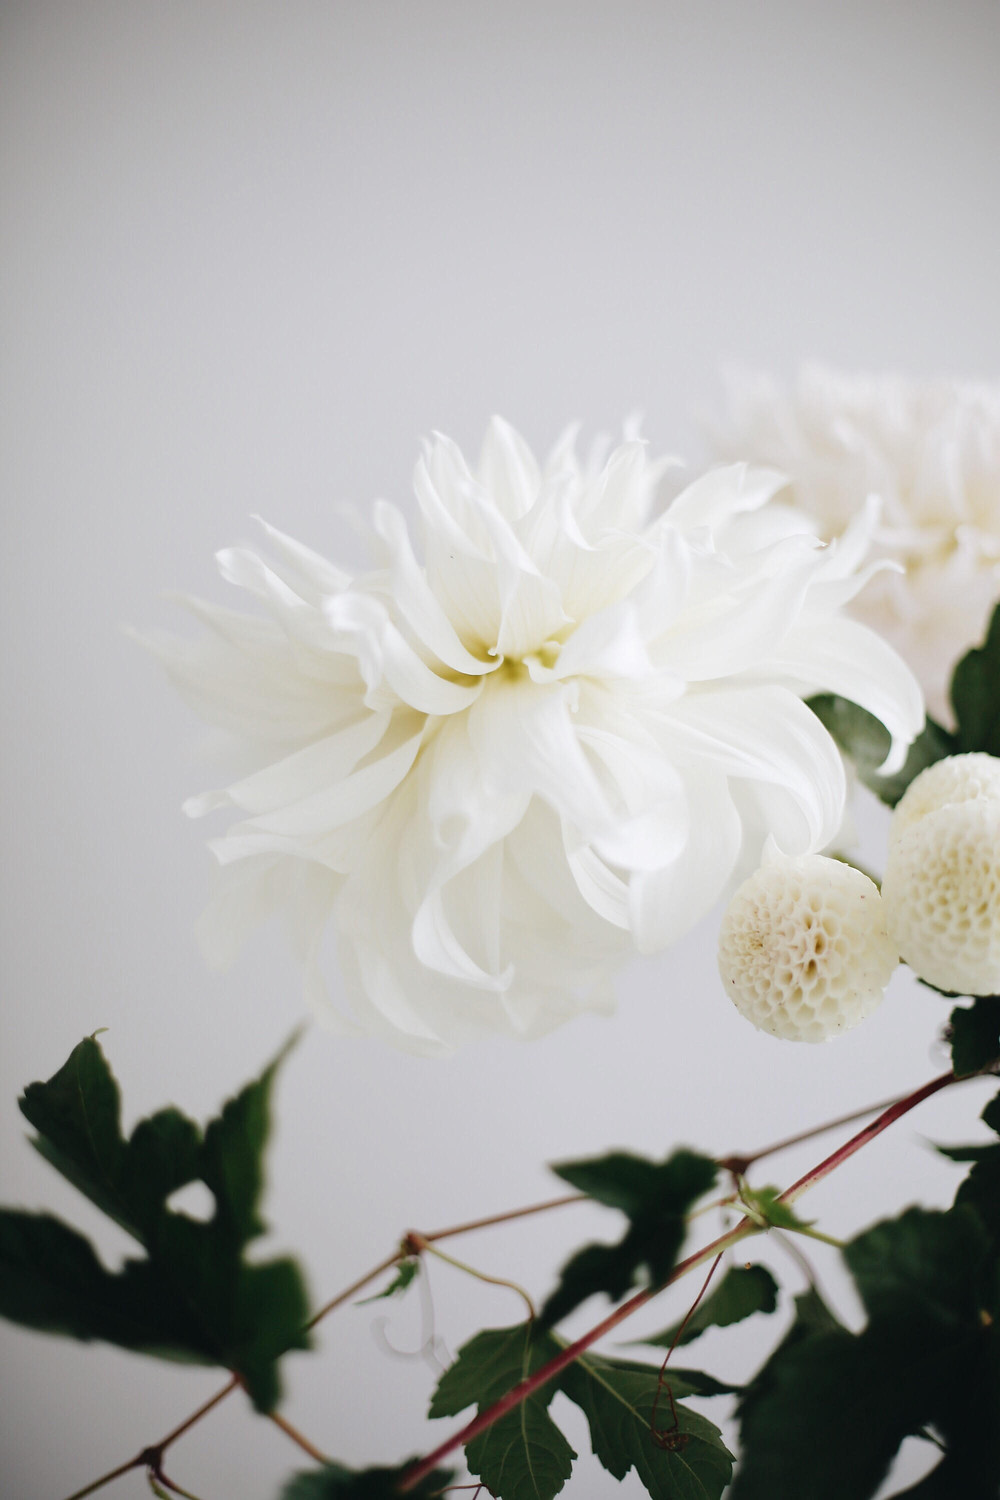 Blooms in Season - Dreamy Dahlias